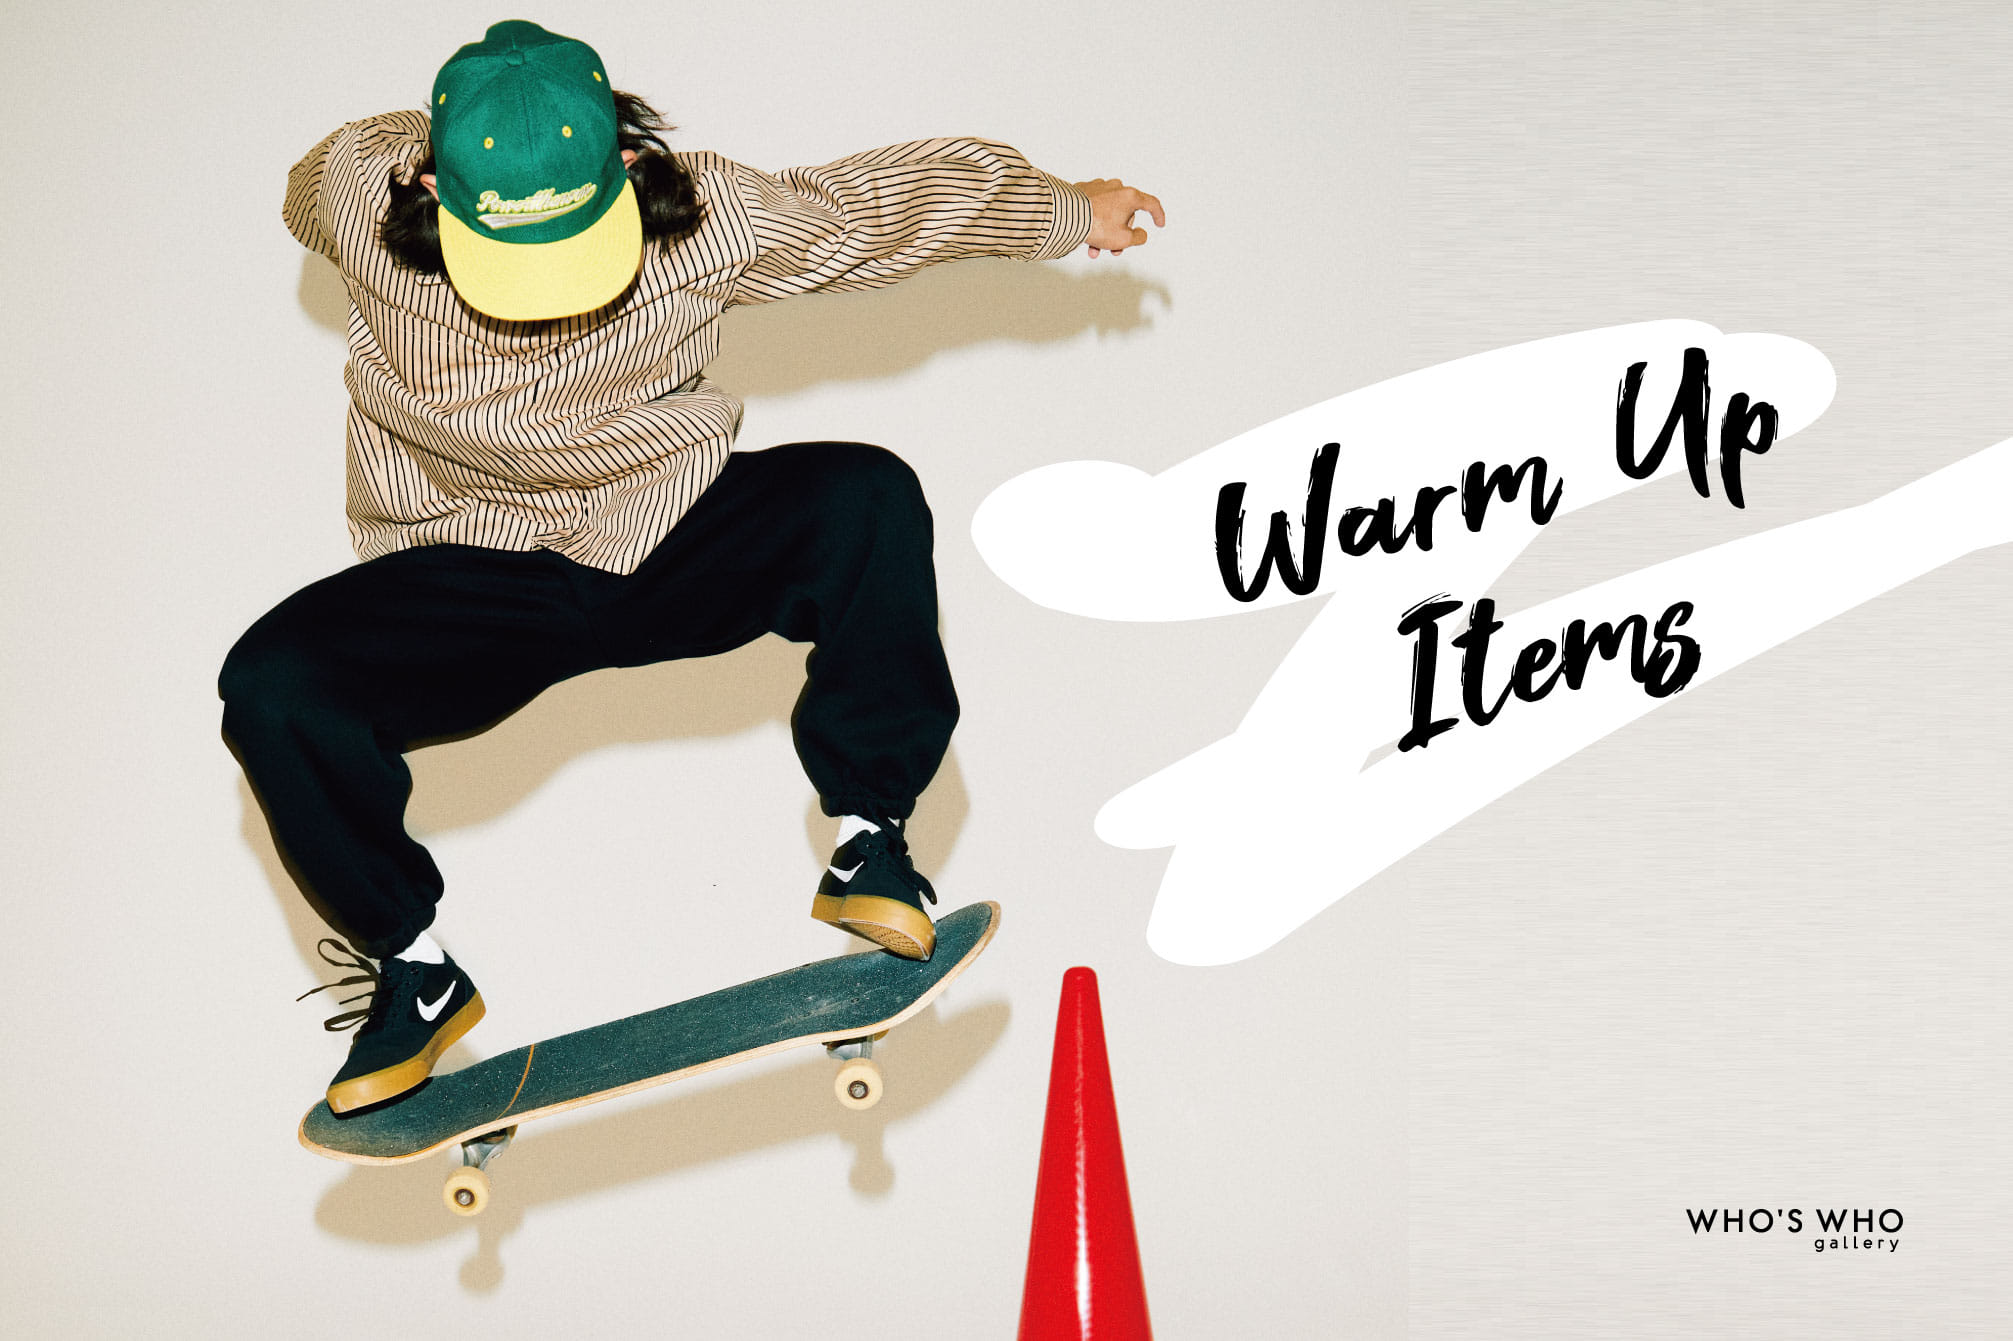 WHO'S WHO gallery 【Warm Up Items】